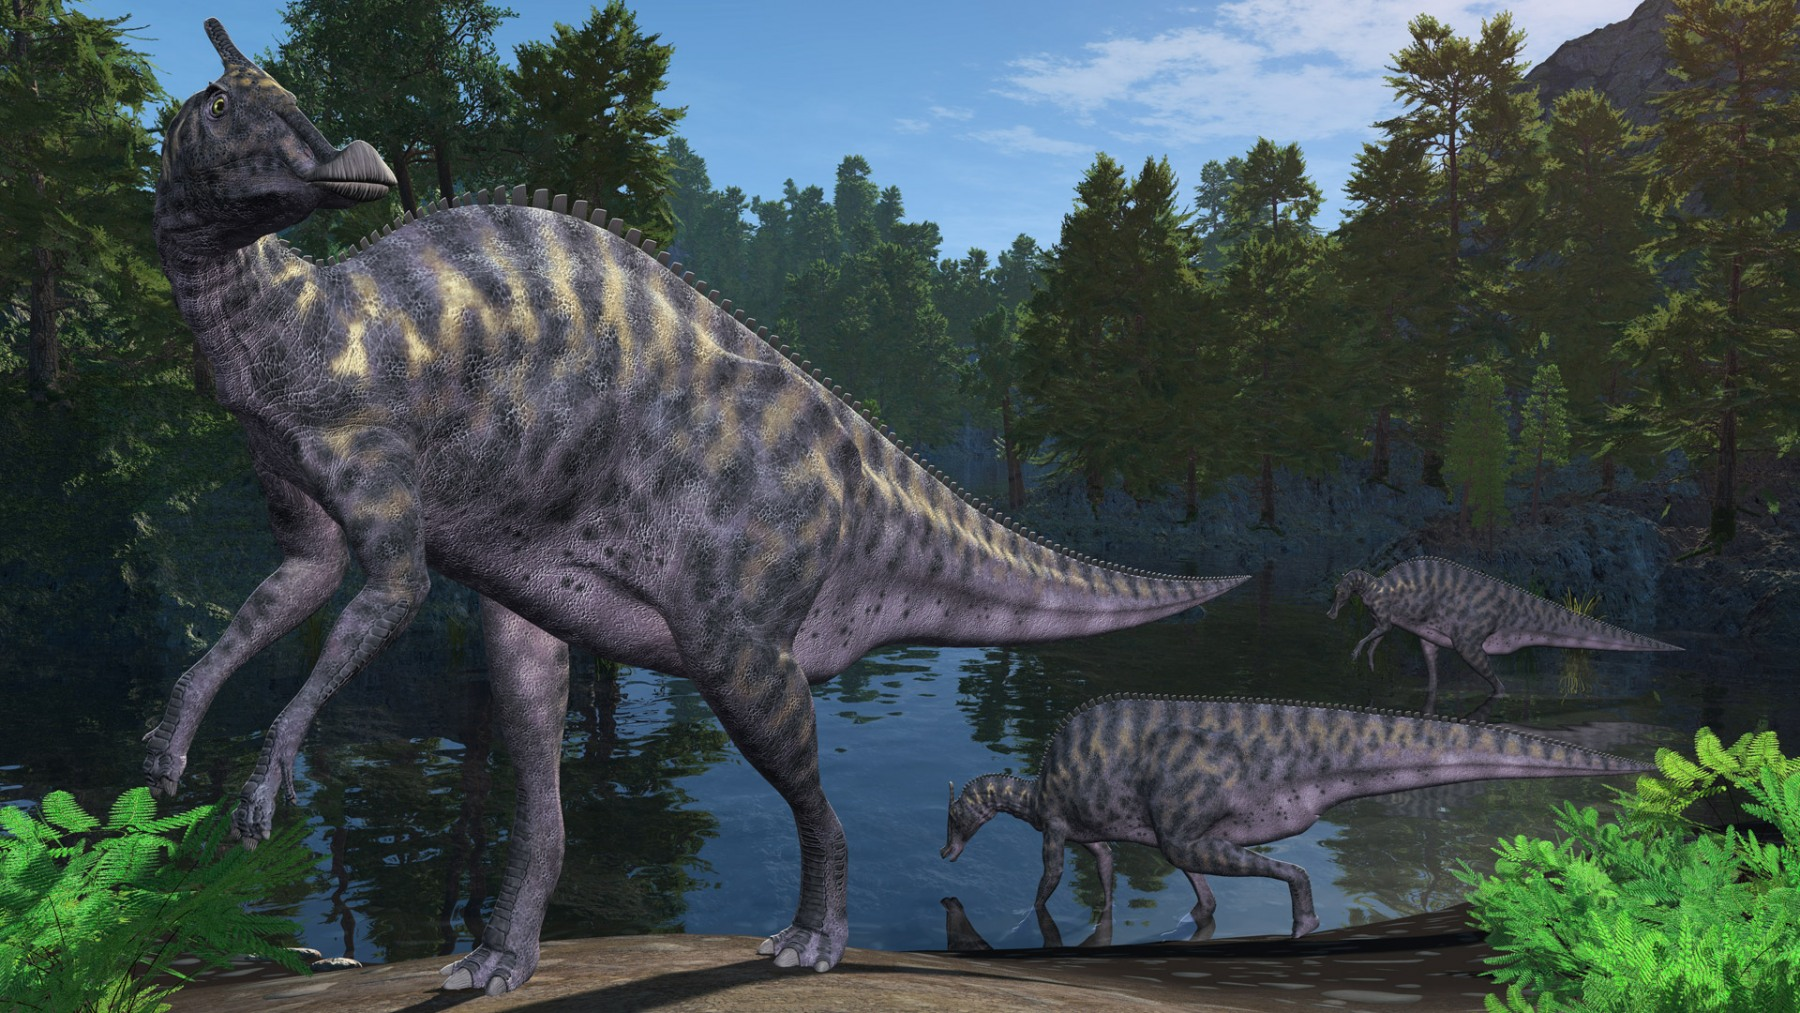 SAUROLOPHUS AT A LAKE